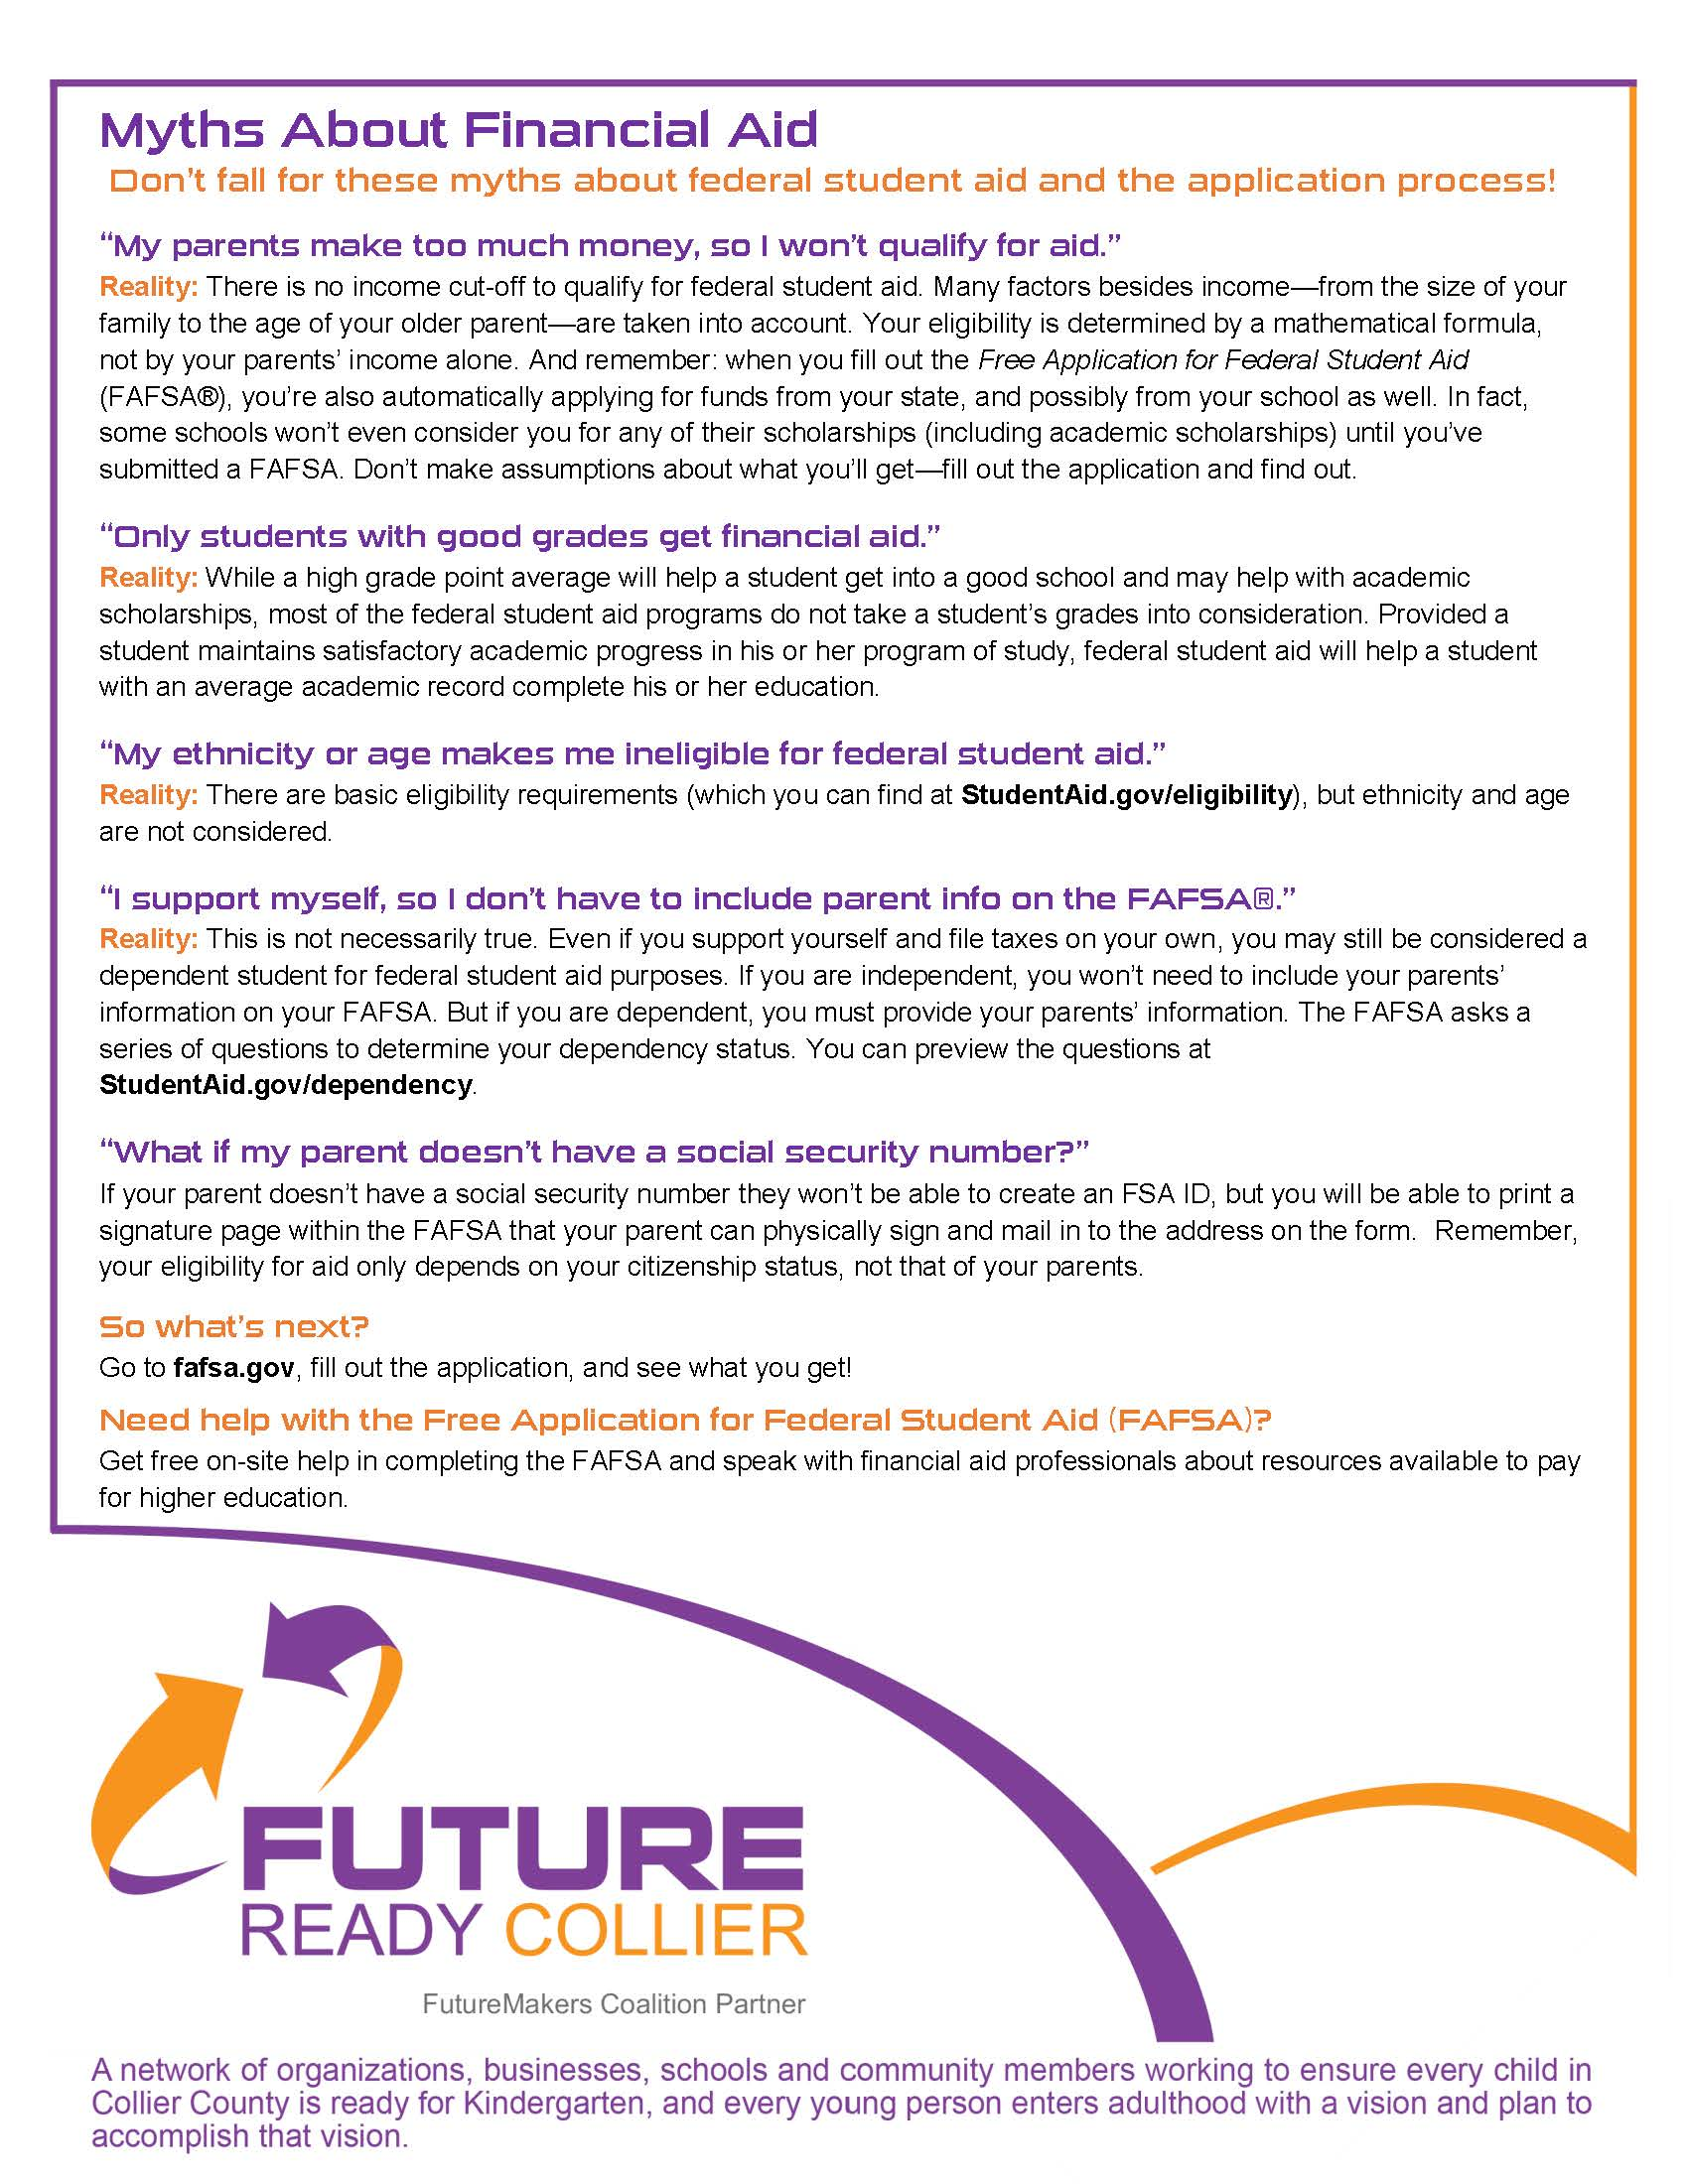 2018 FAFSA completion events_Page_2 - Future Ready Collier